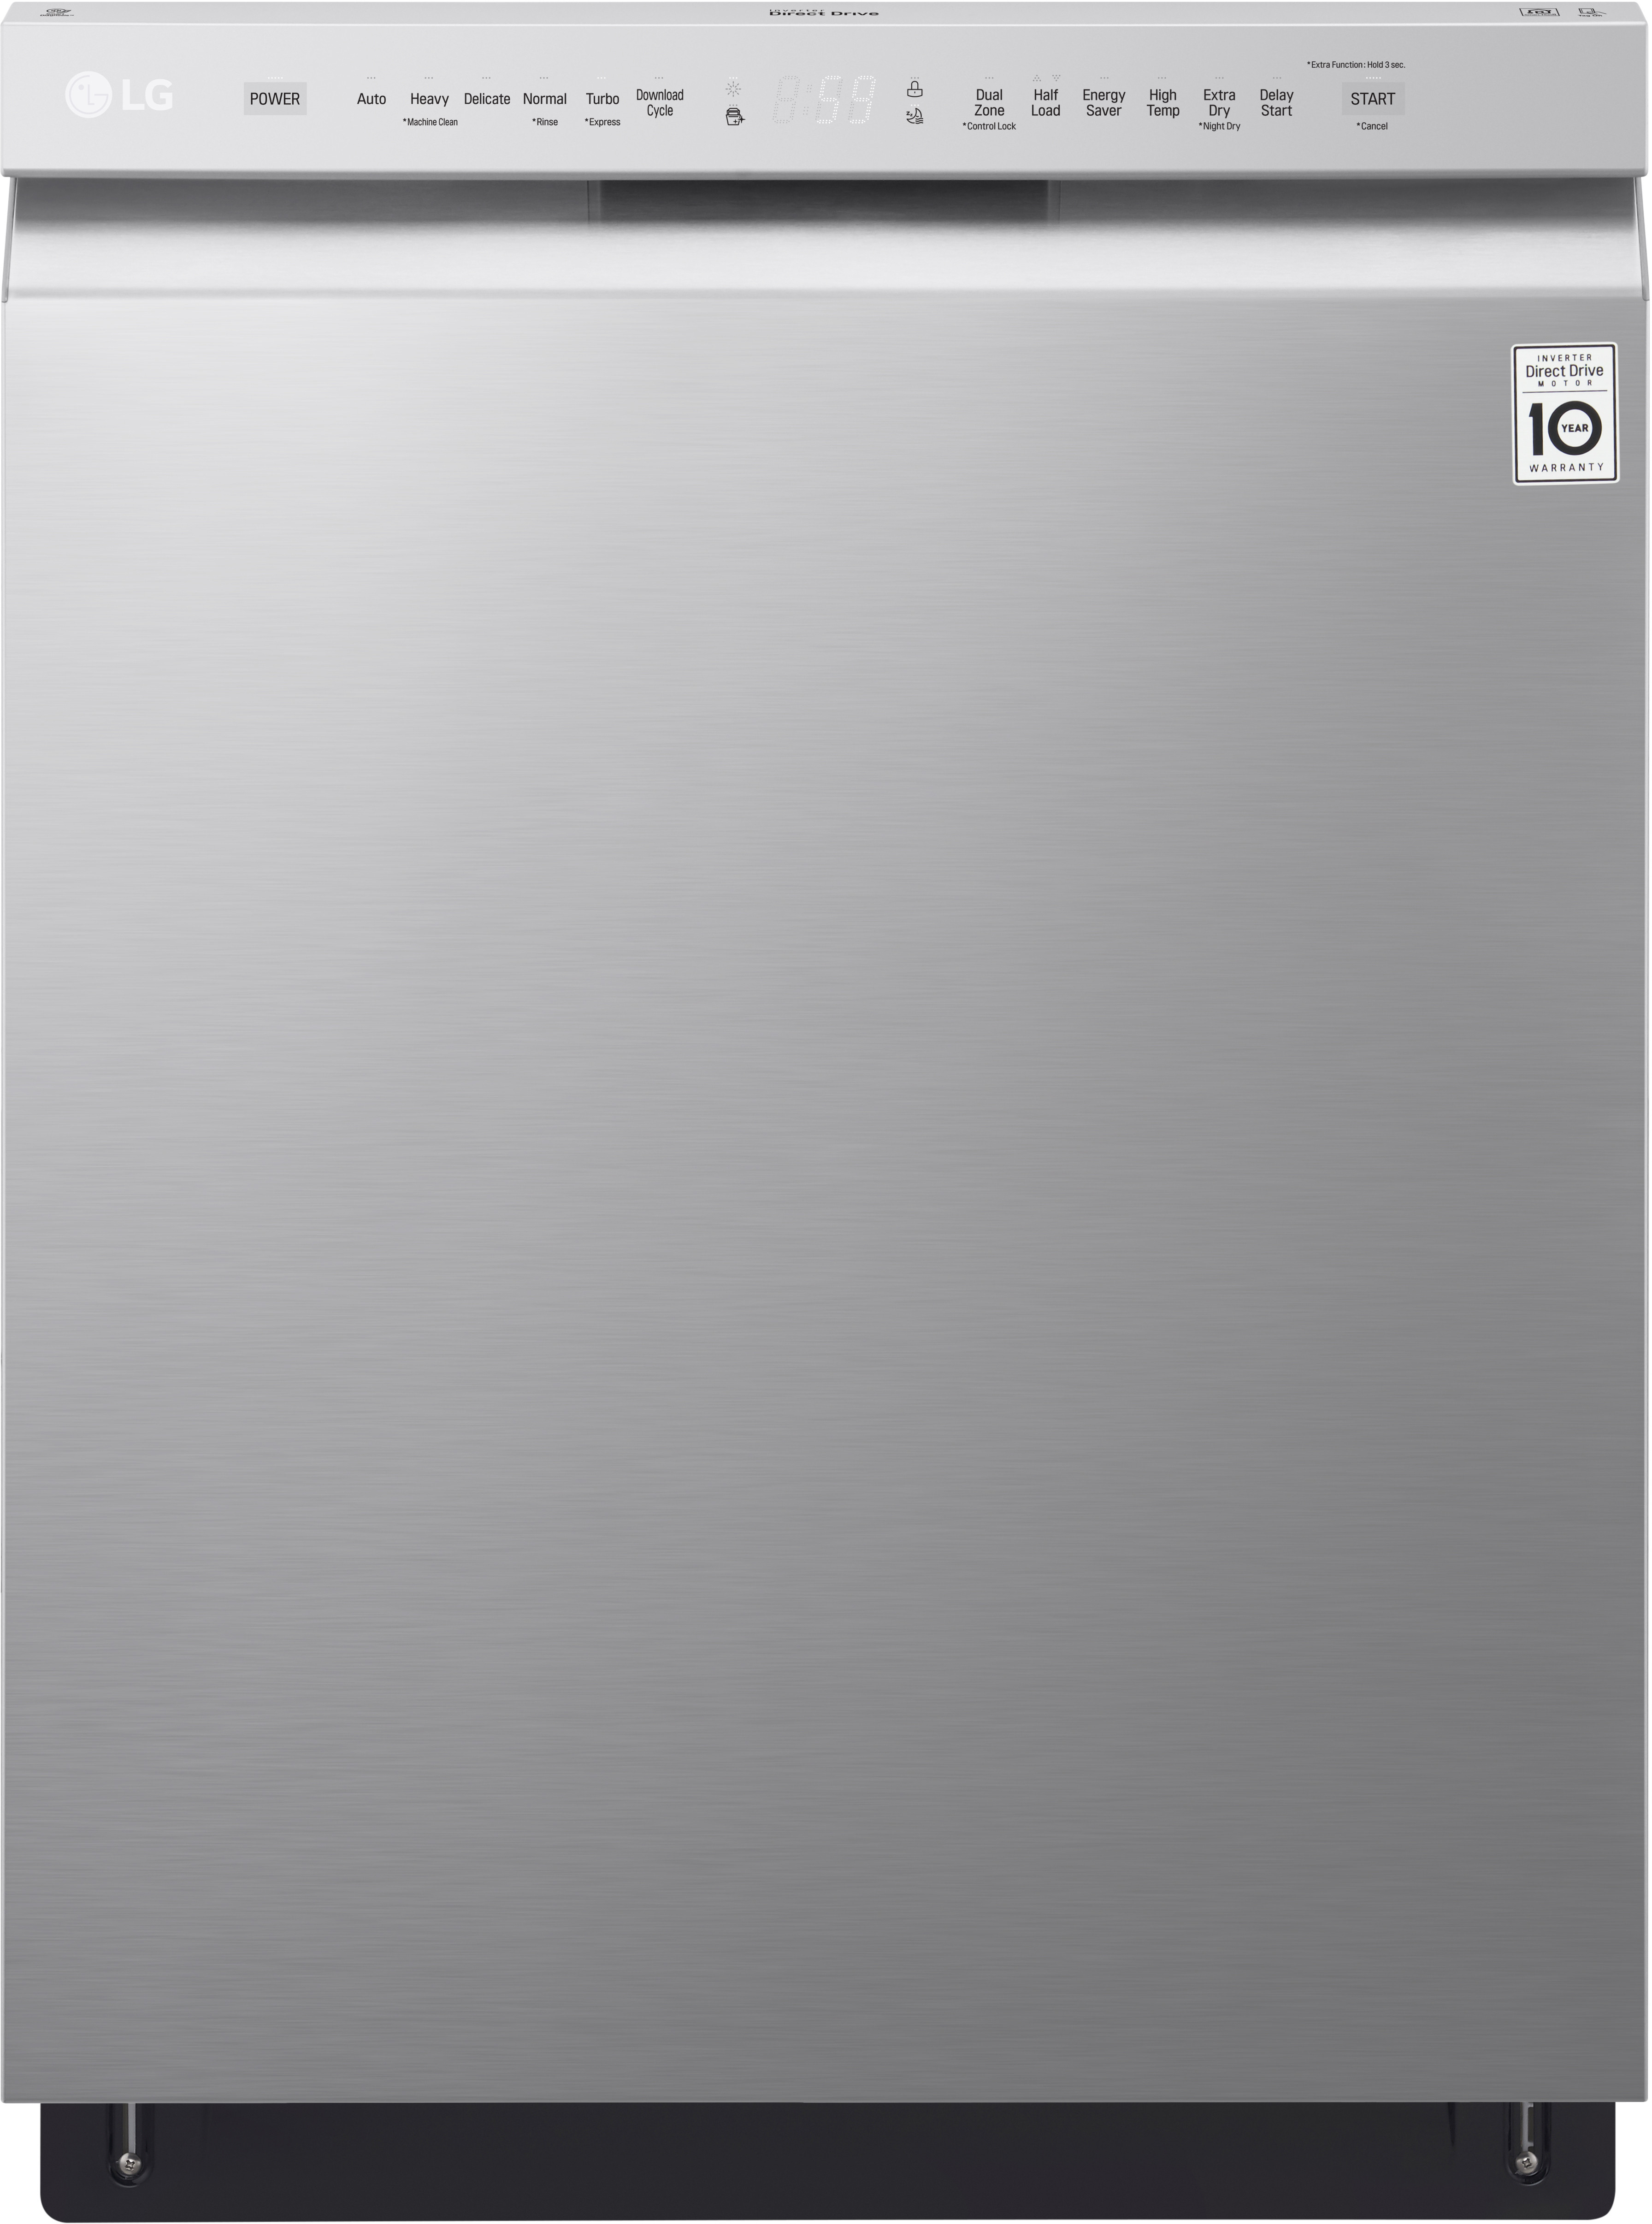 lg dishwasher black. lg dishwasher black